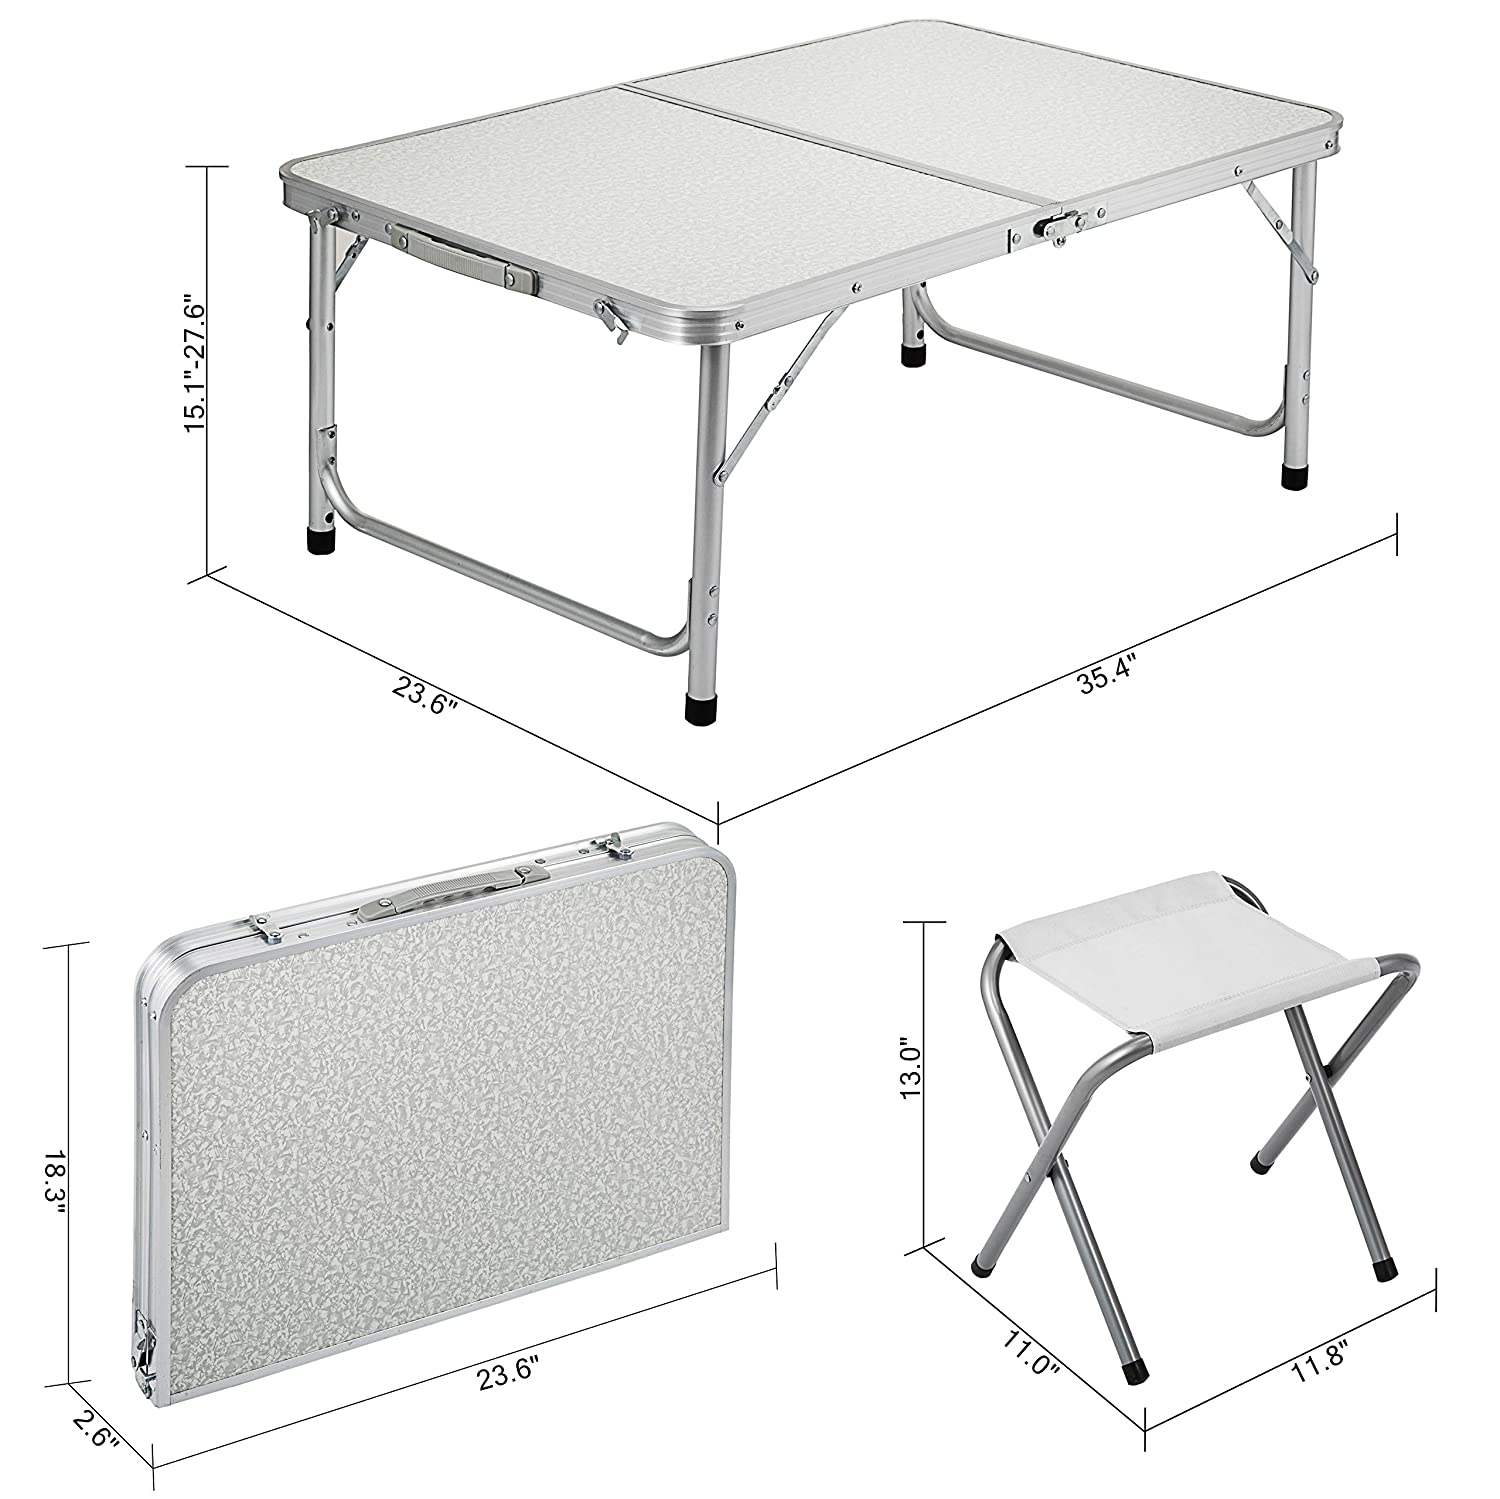 Happybuy Folding Picnic Table White 4 Person Camping Table and Chairs with 2 Benches Portable Table and Chair Set 35.4 L x 23.6 W Office Learning Beach Camping Garden Outdoor